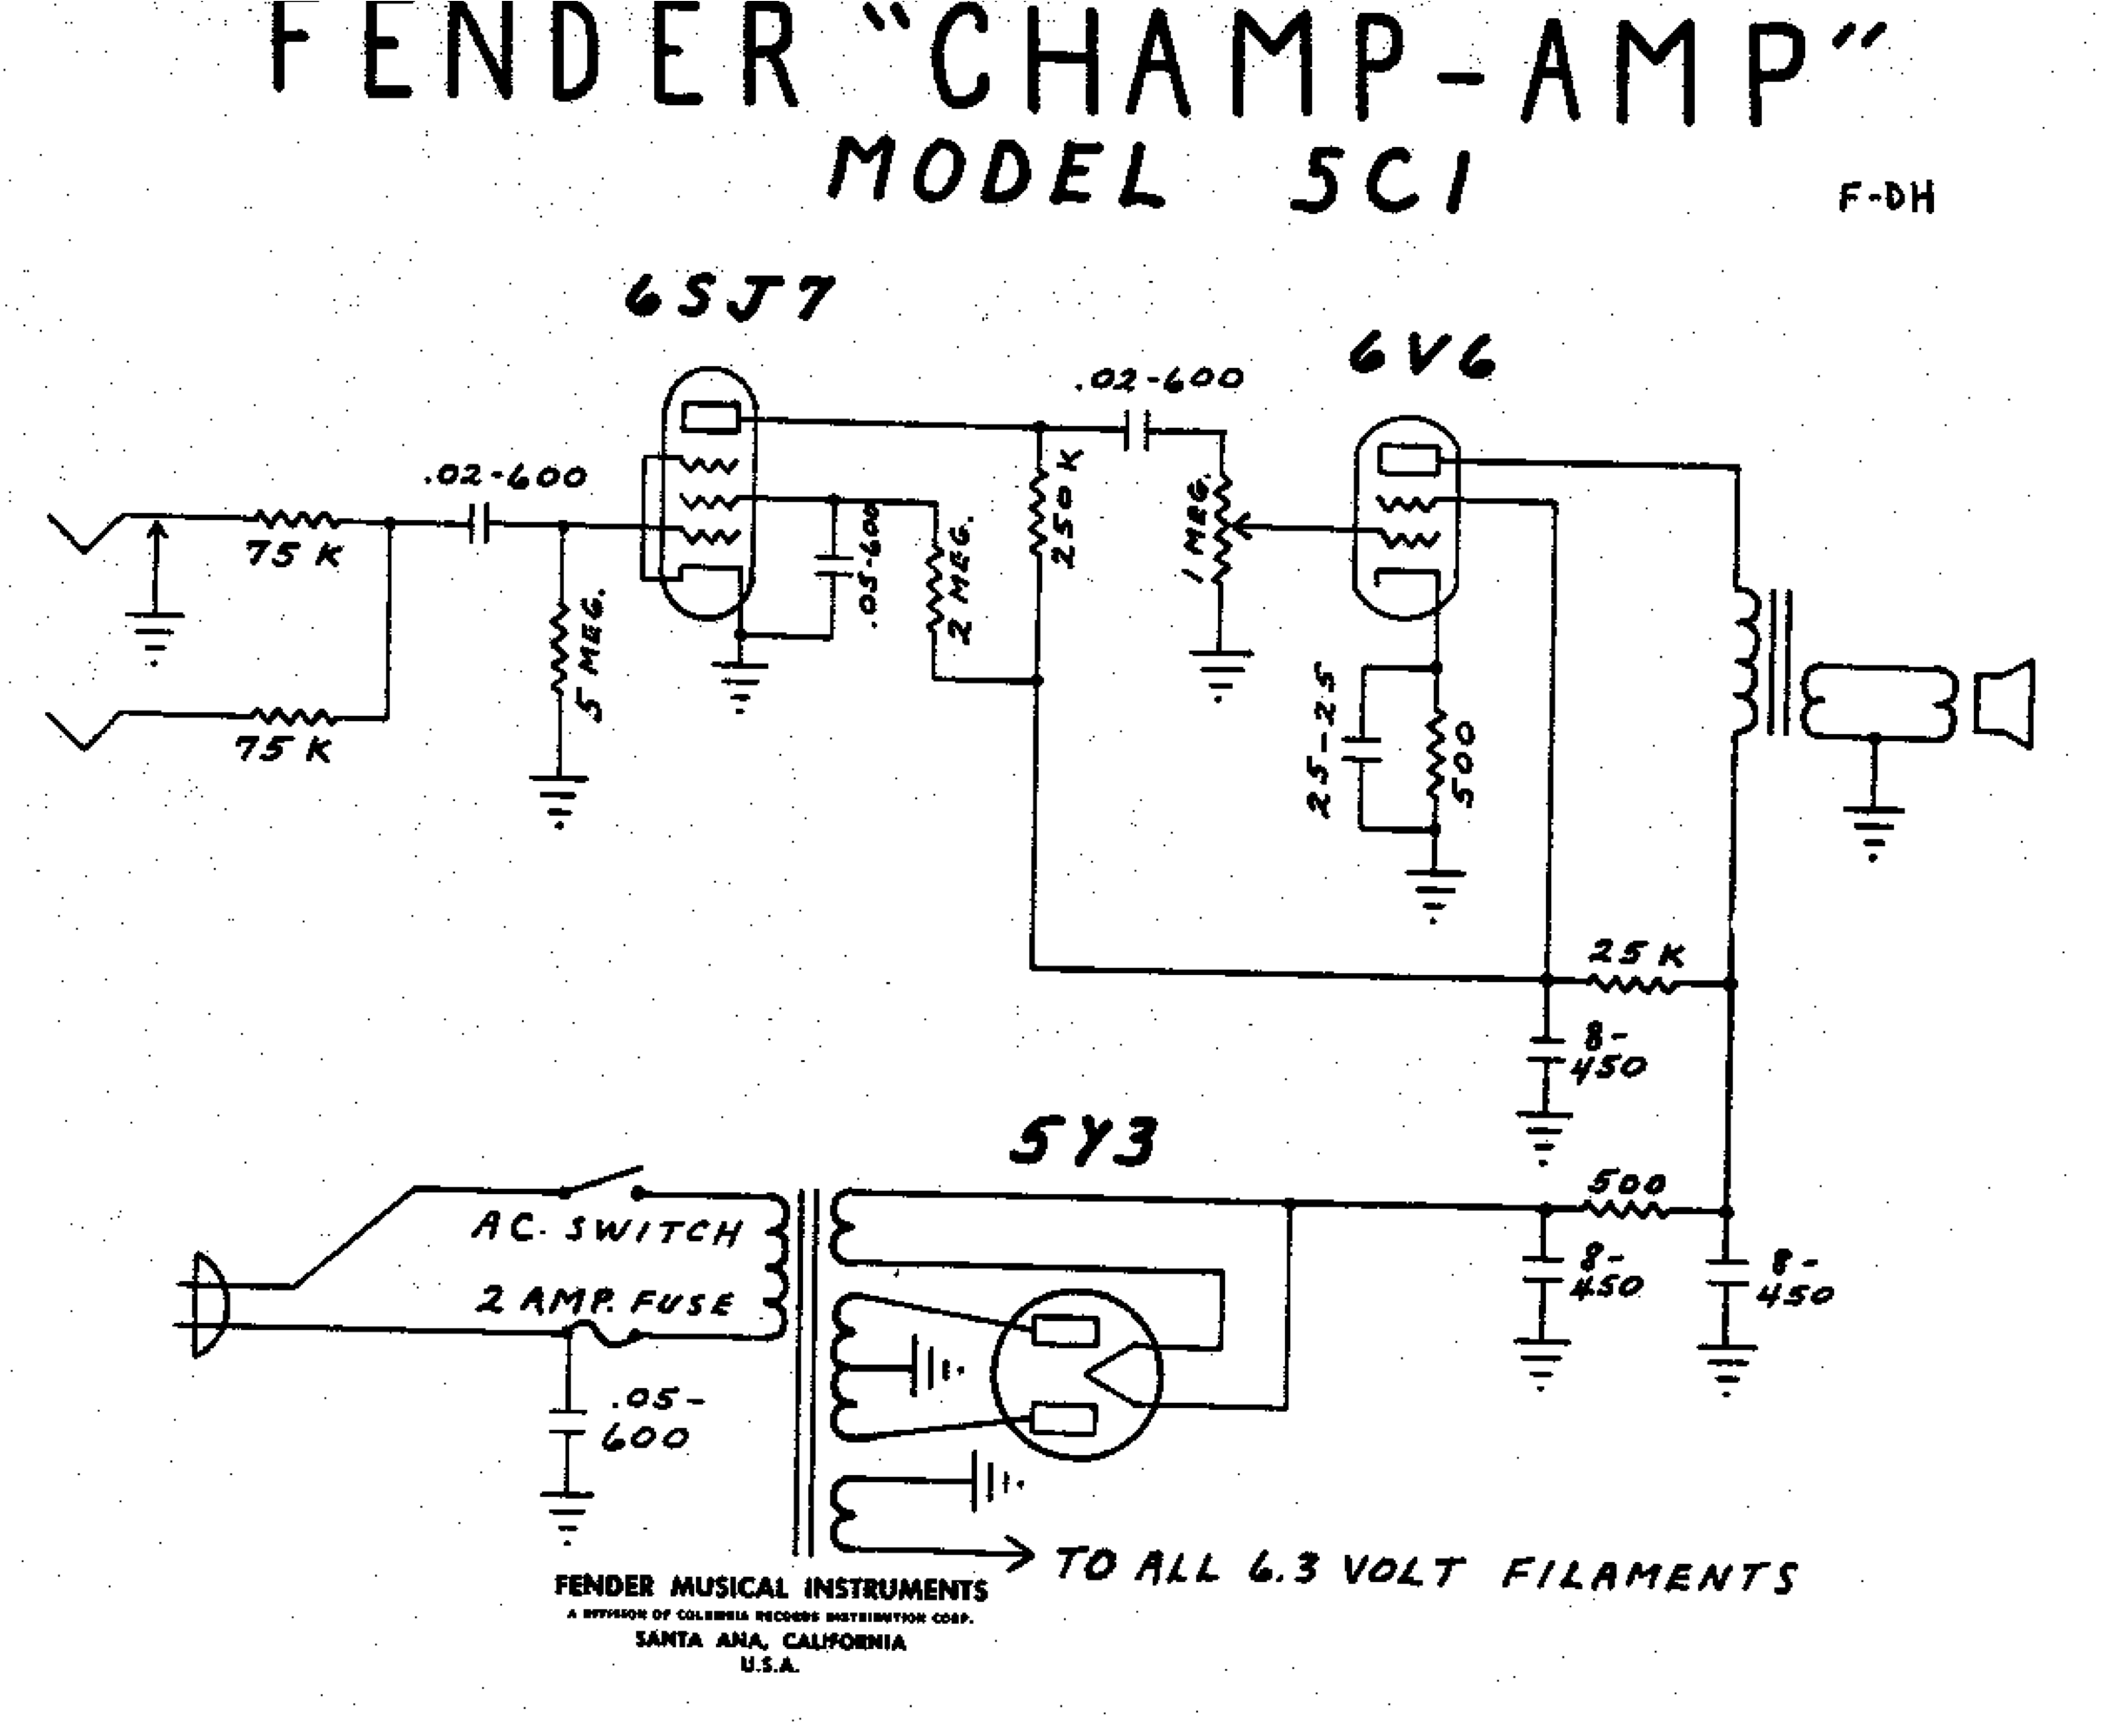 Fender Champ 5C1 Wiring Diagram | My Fender Champ | Vintage Amps